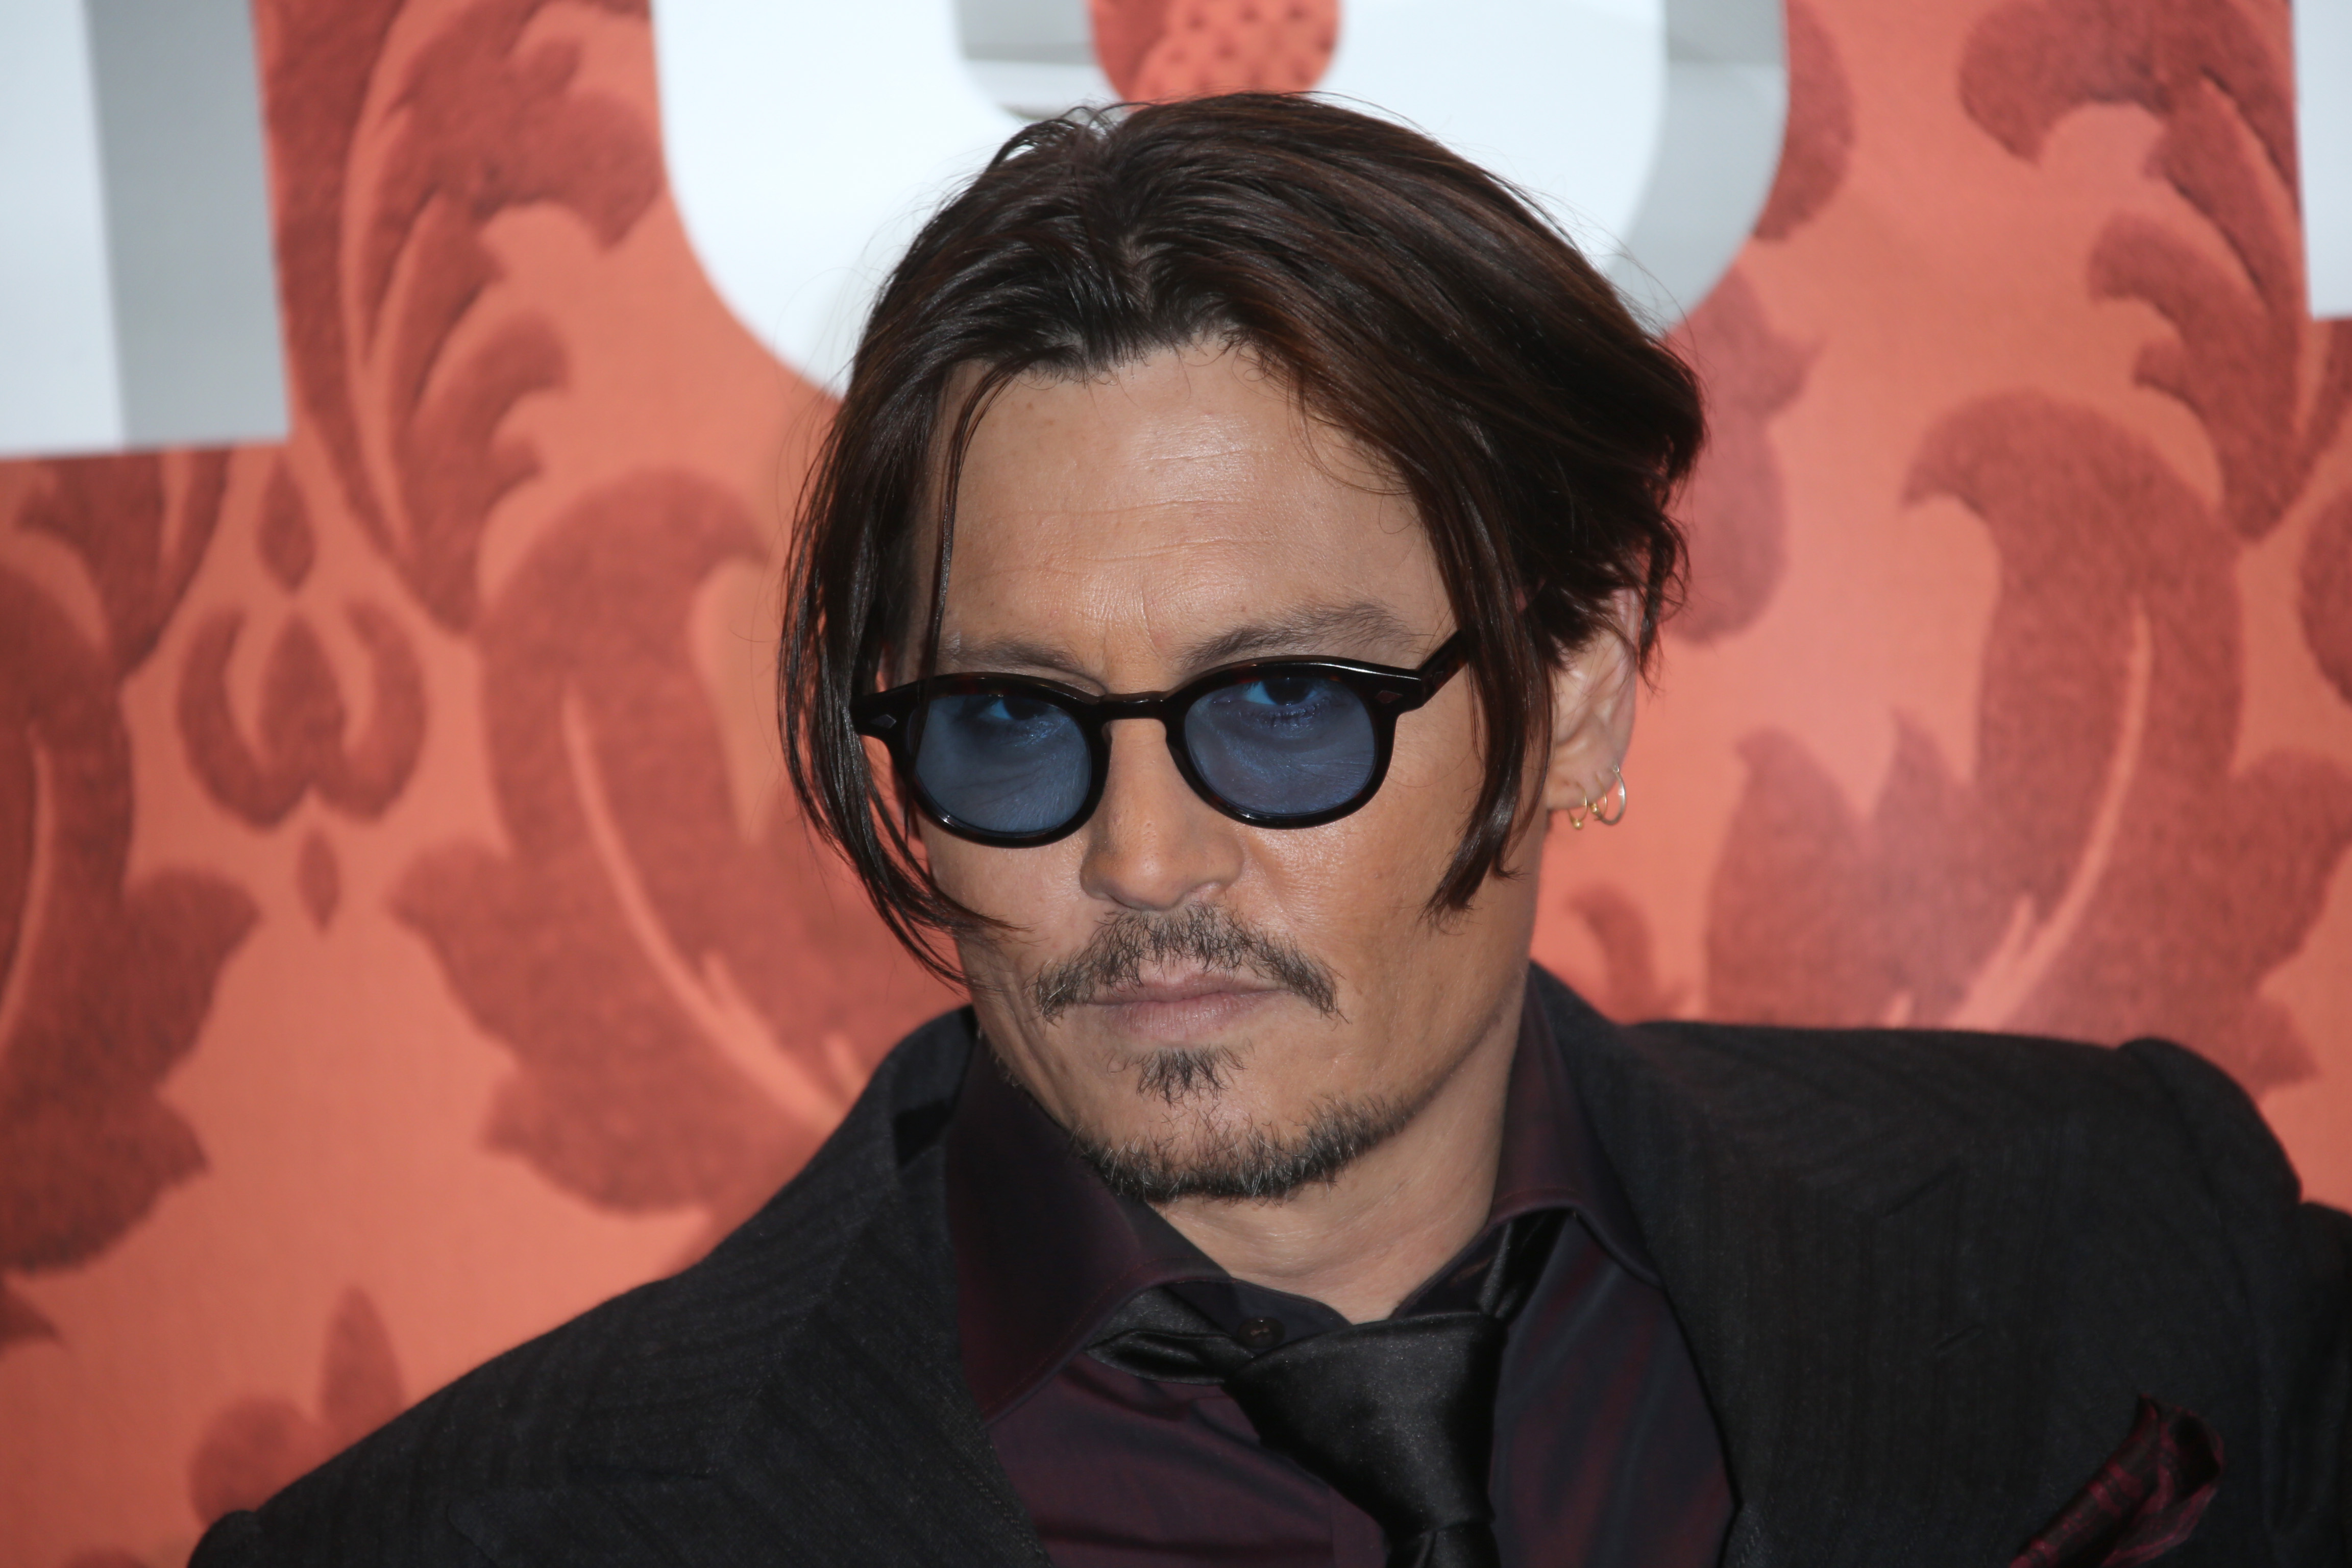 Actor Johnny Depp poses for photographers upon arrival at the premiere of the film Mortdecai, in London, Jan. 19, 2015.